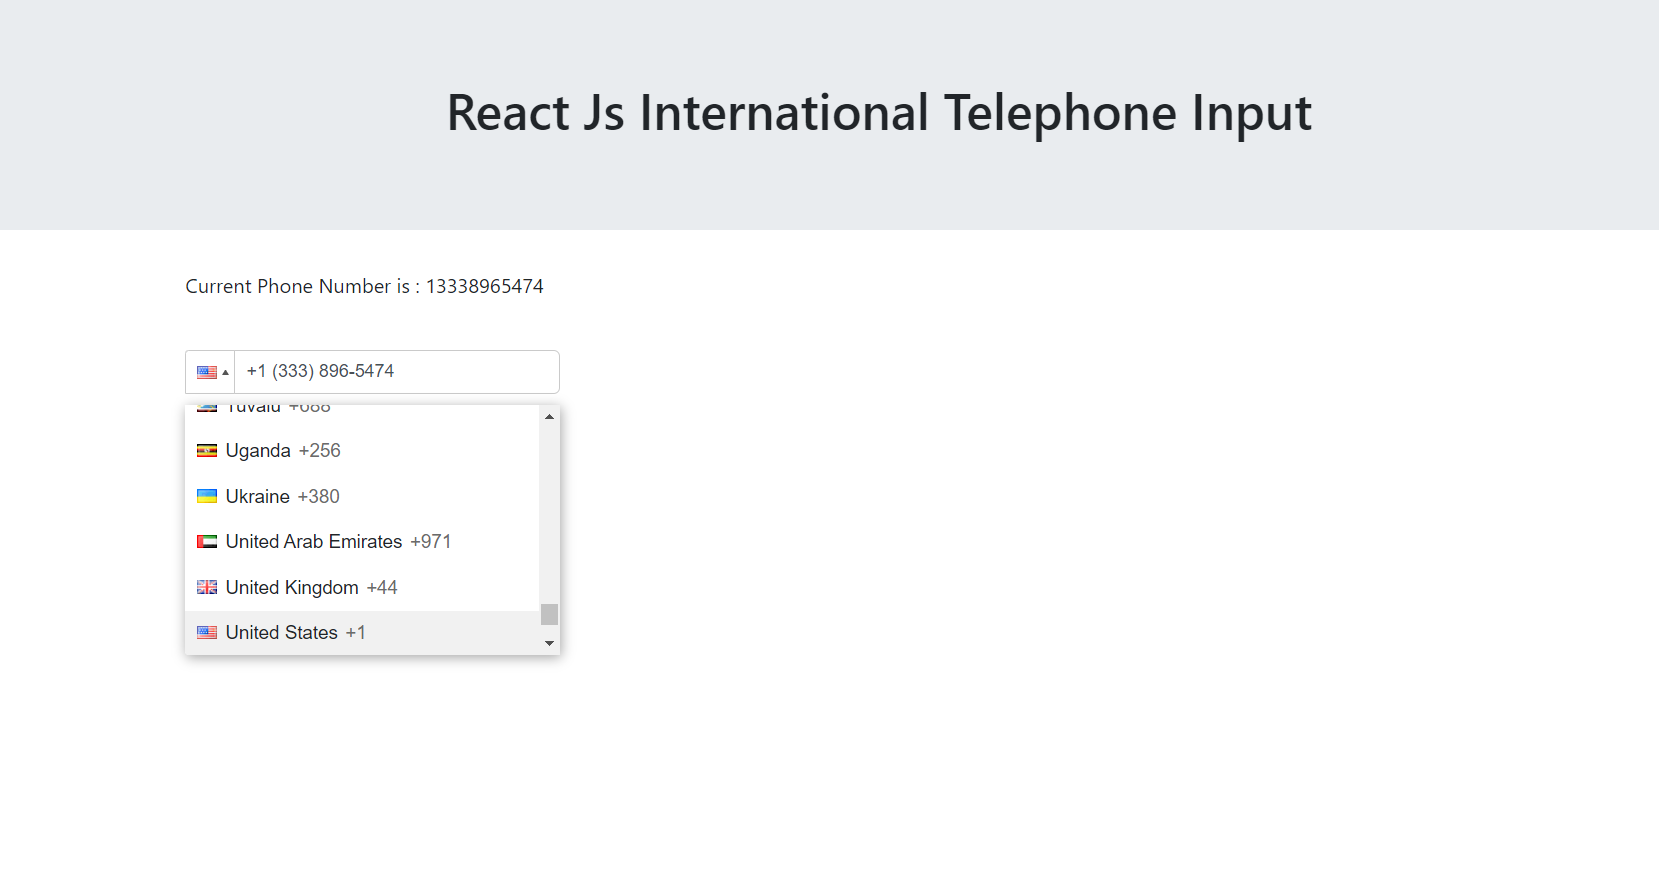 Reactjs International Telephone Input